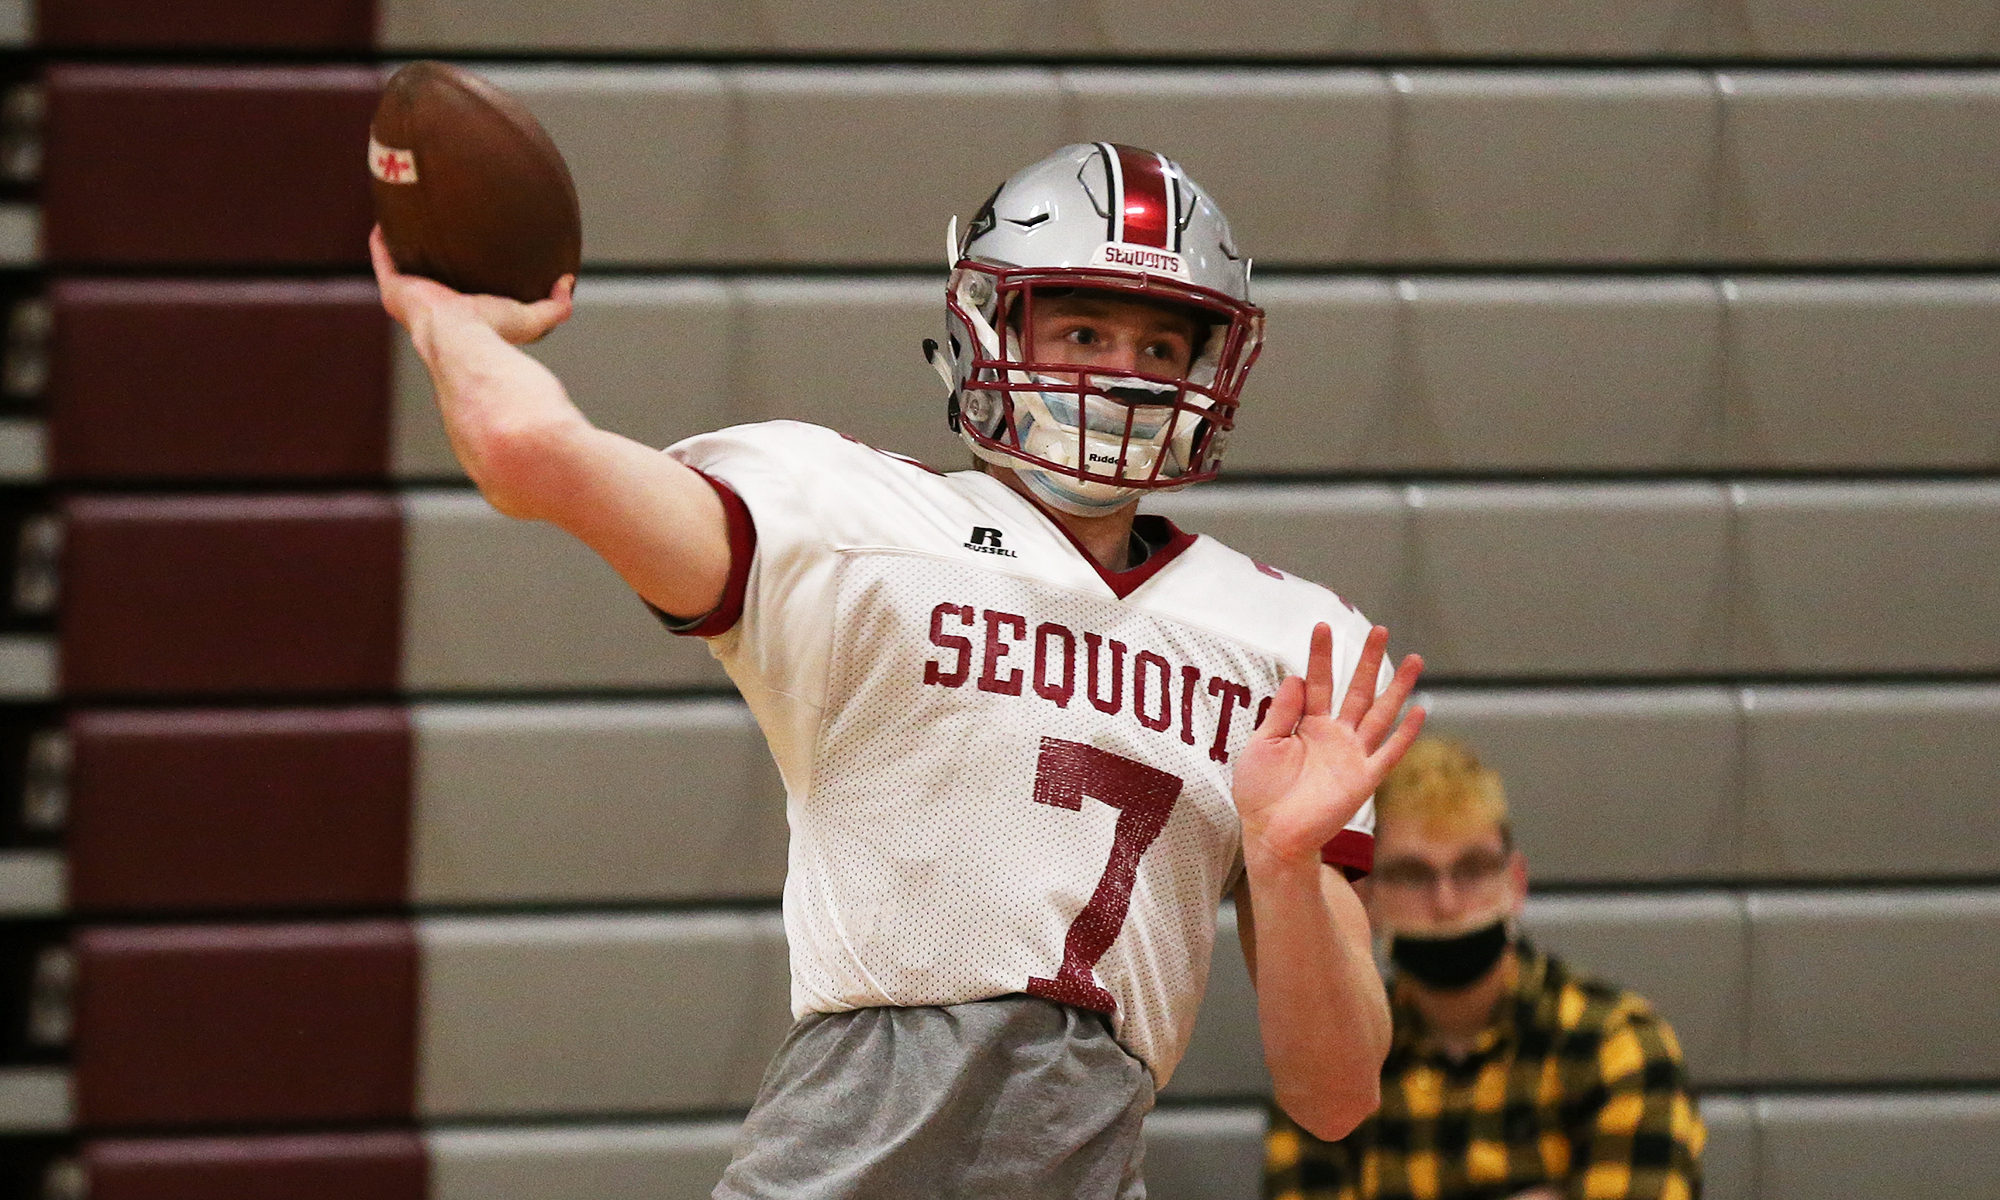 Antioch football's Athan Kaliakmanis throws a pass during a Sequoits' practice.